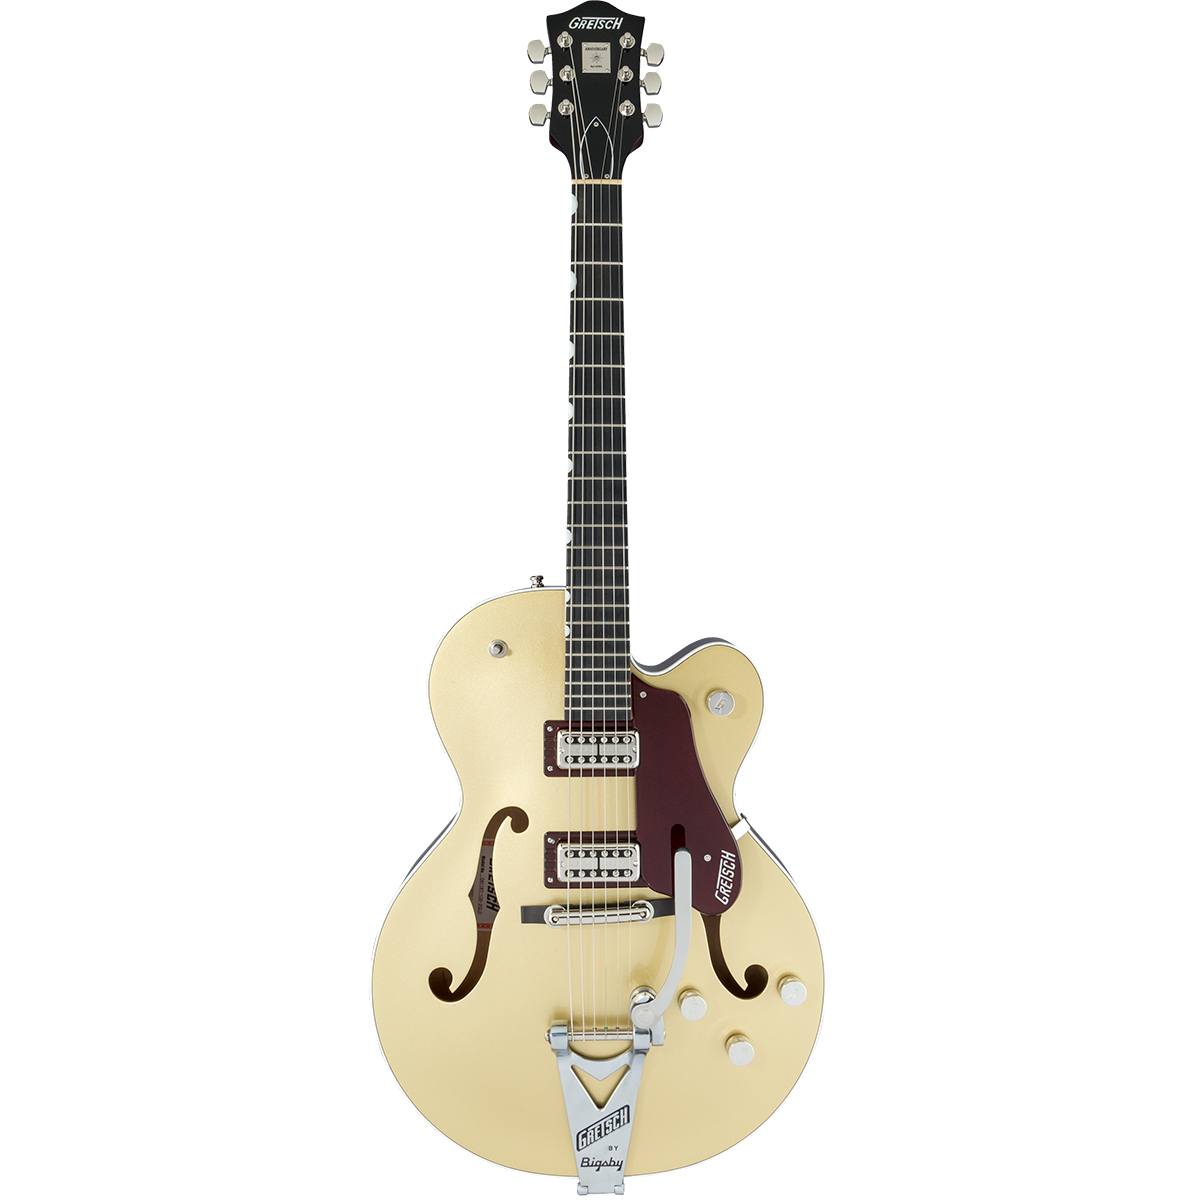 Gretsch G6118T-135 LTD 135TH Anniversary  - Guitarra eléctrica